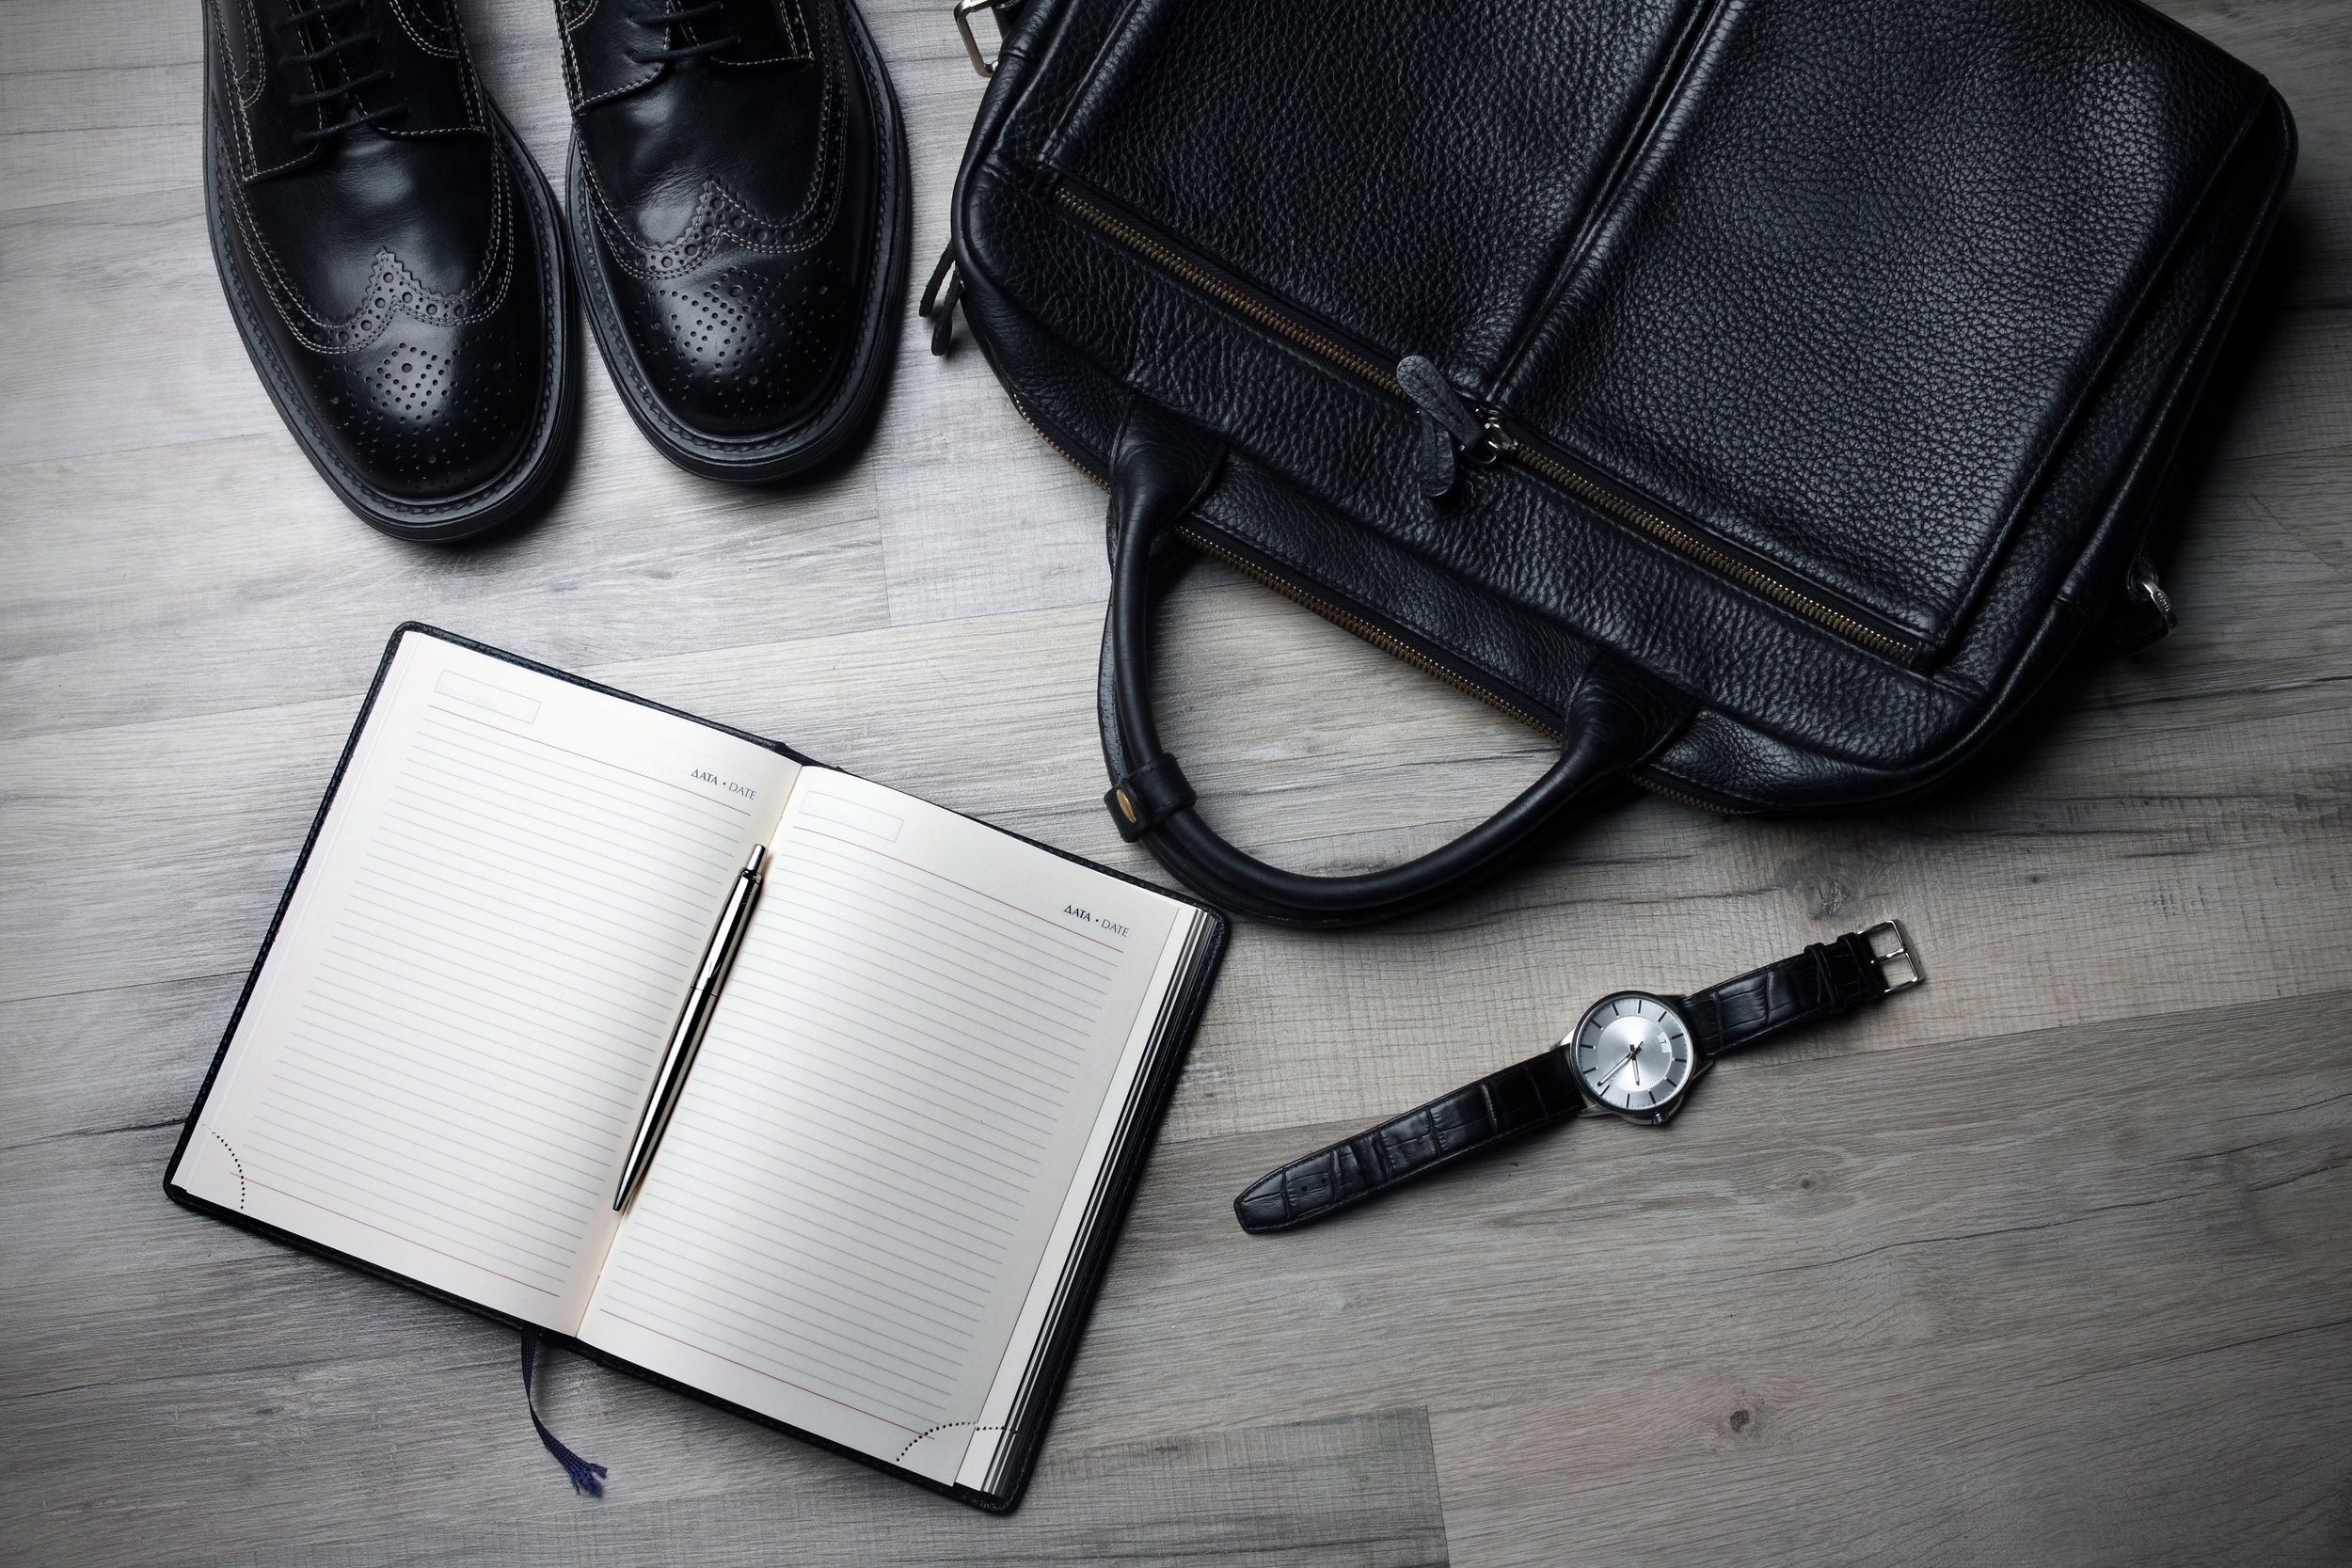 7 Things You Must Bring To An Architecture Job Interview (And 5 You Shouldn't)